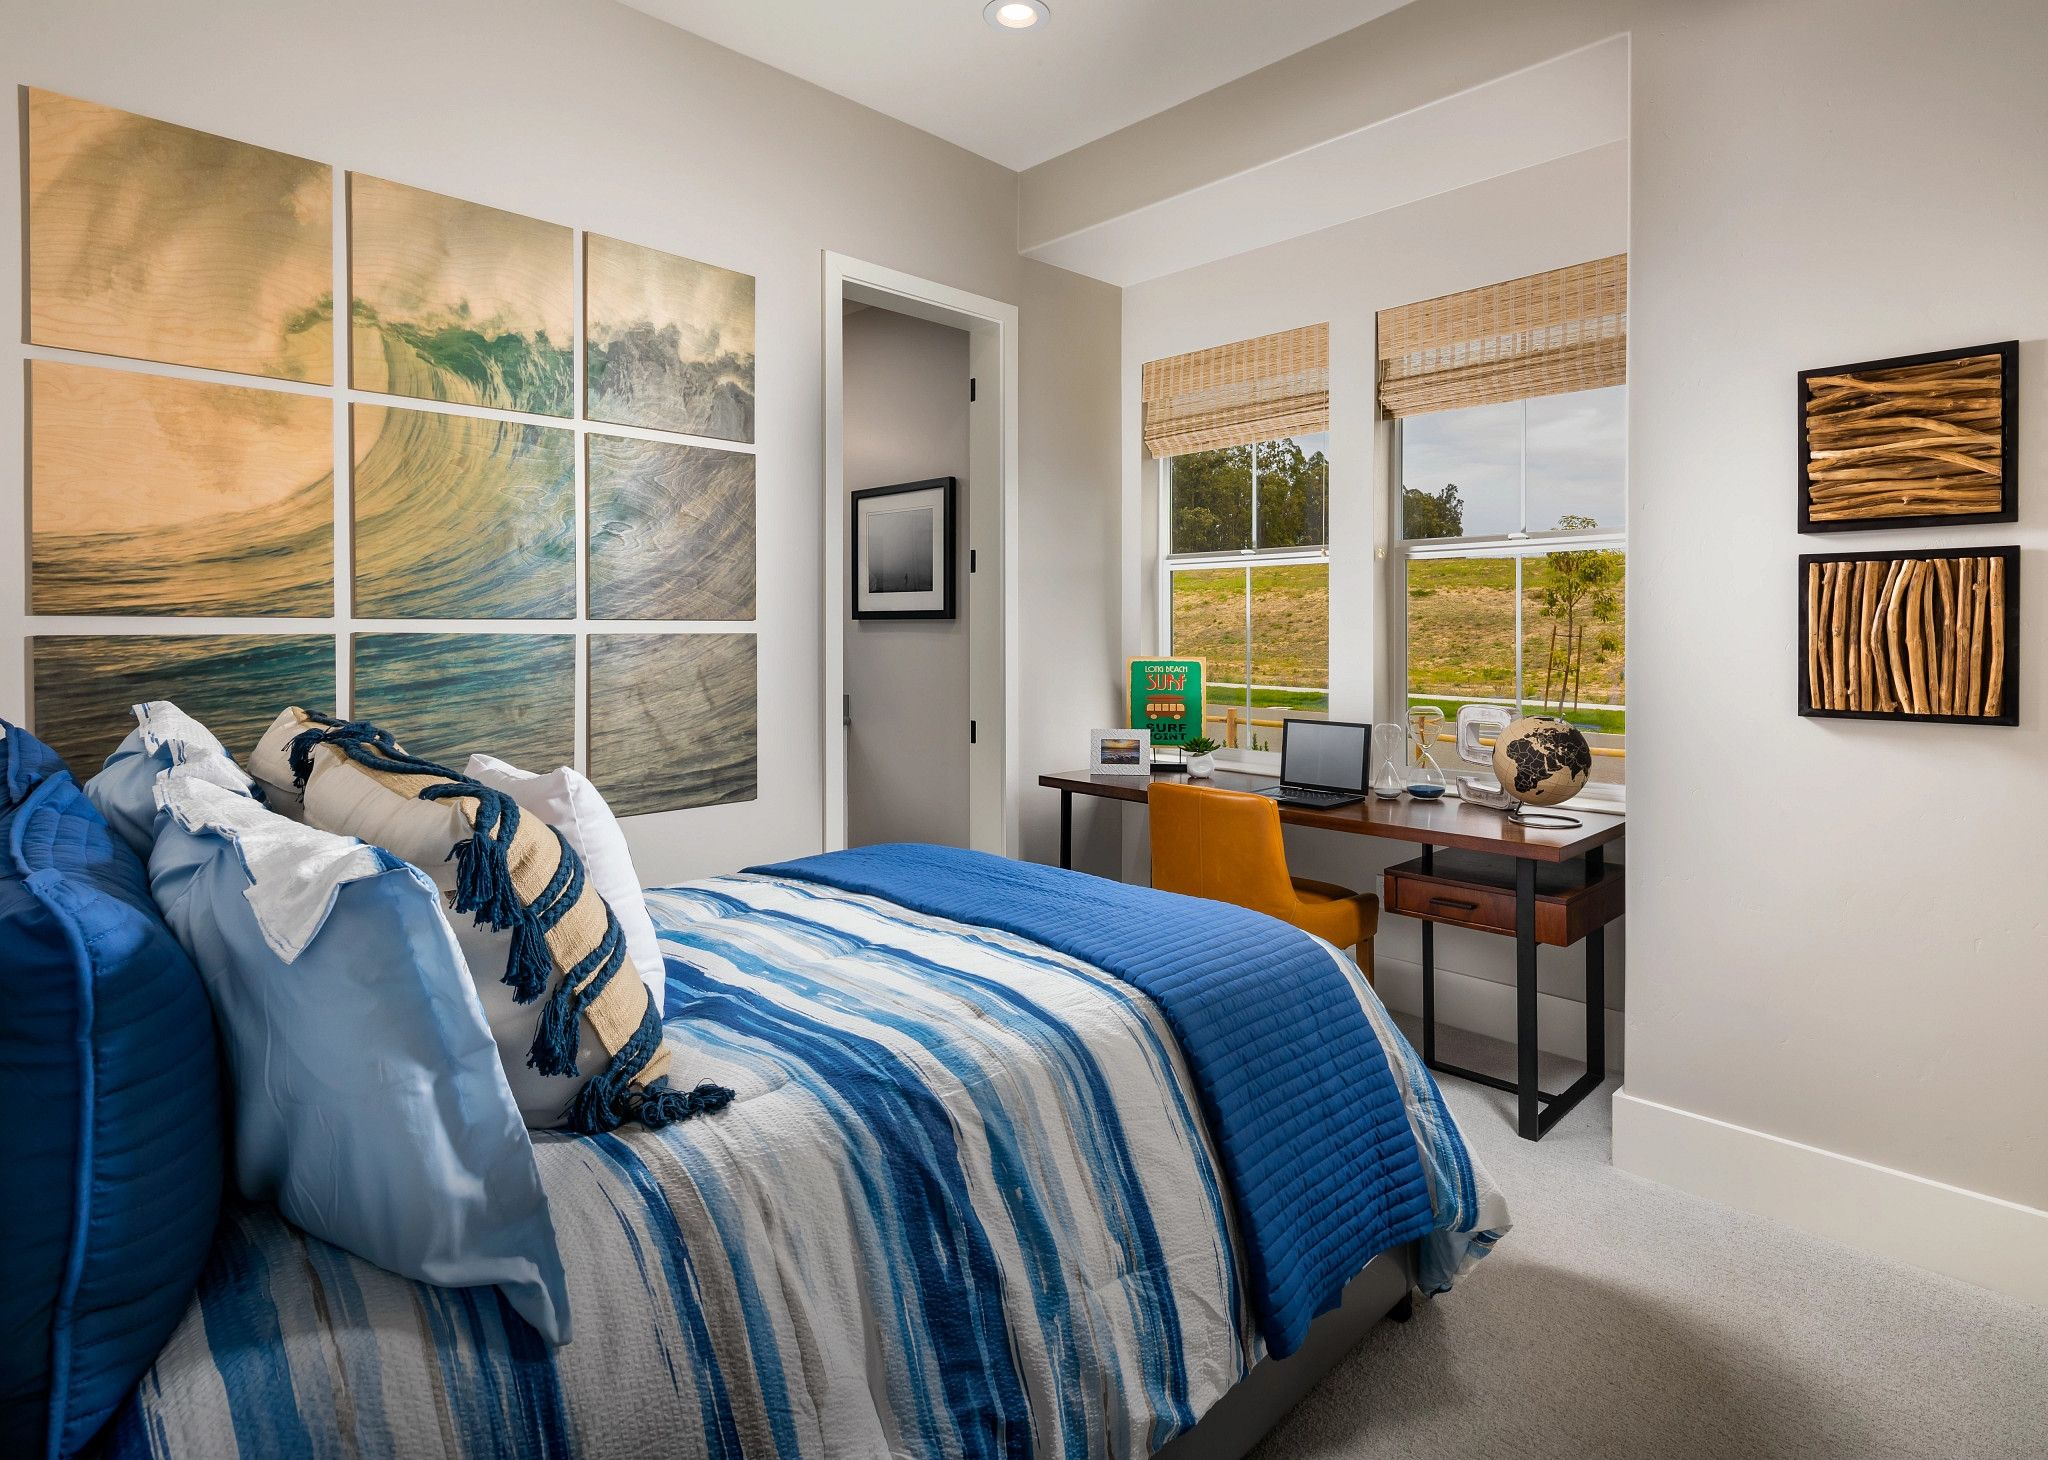 Bedroom featured in the Ventana By Shea Homes - Trilogy in San Luis Obispo, CA